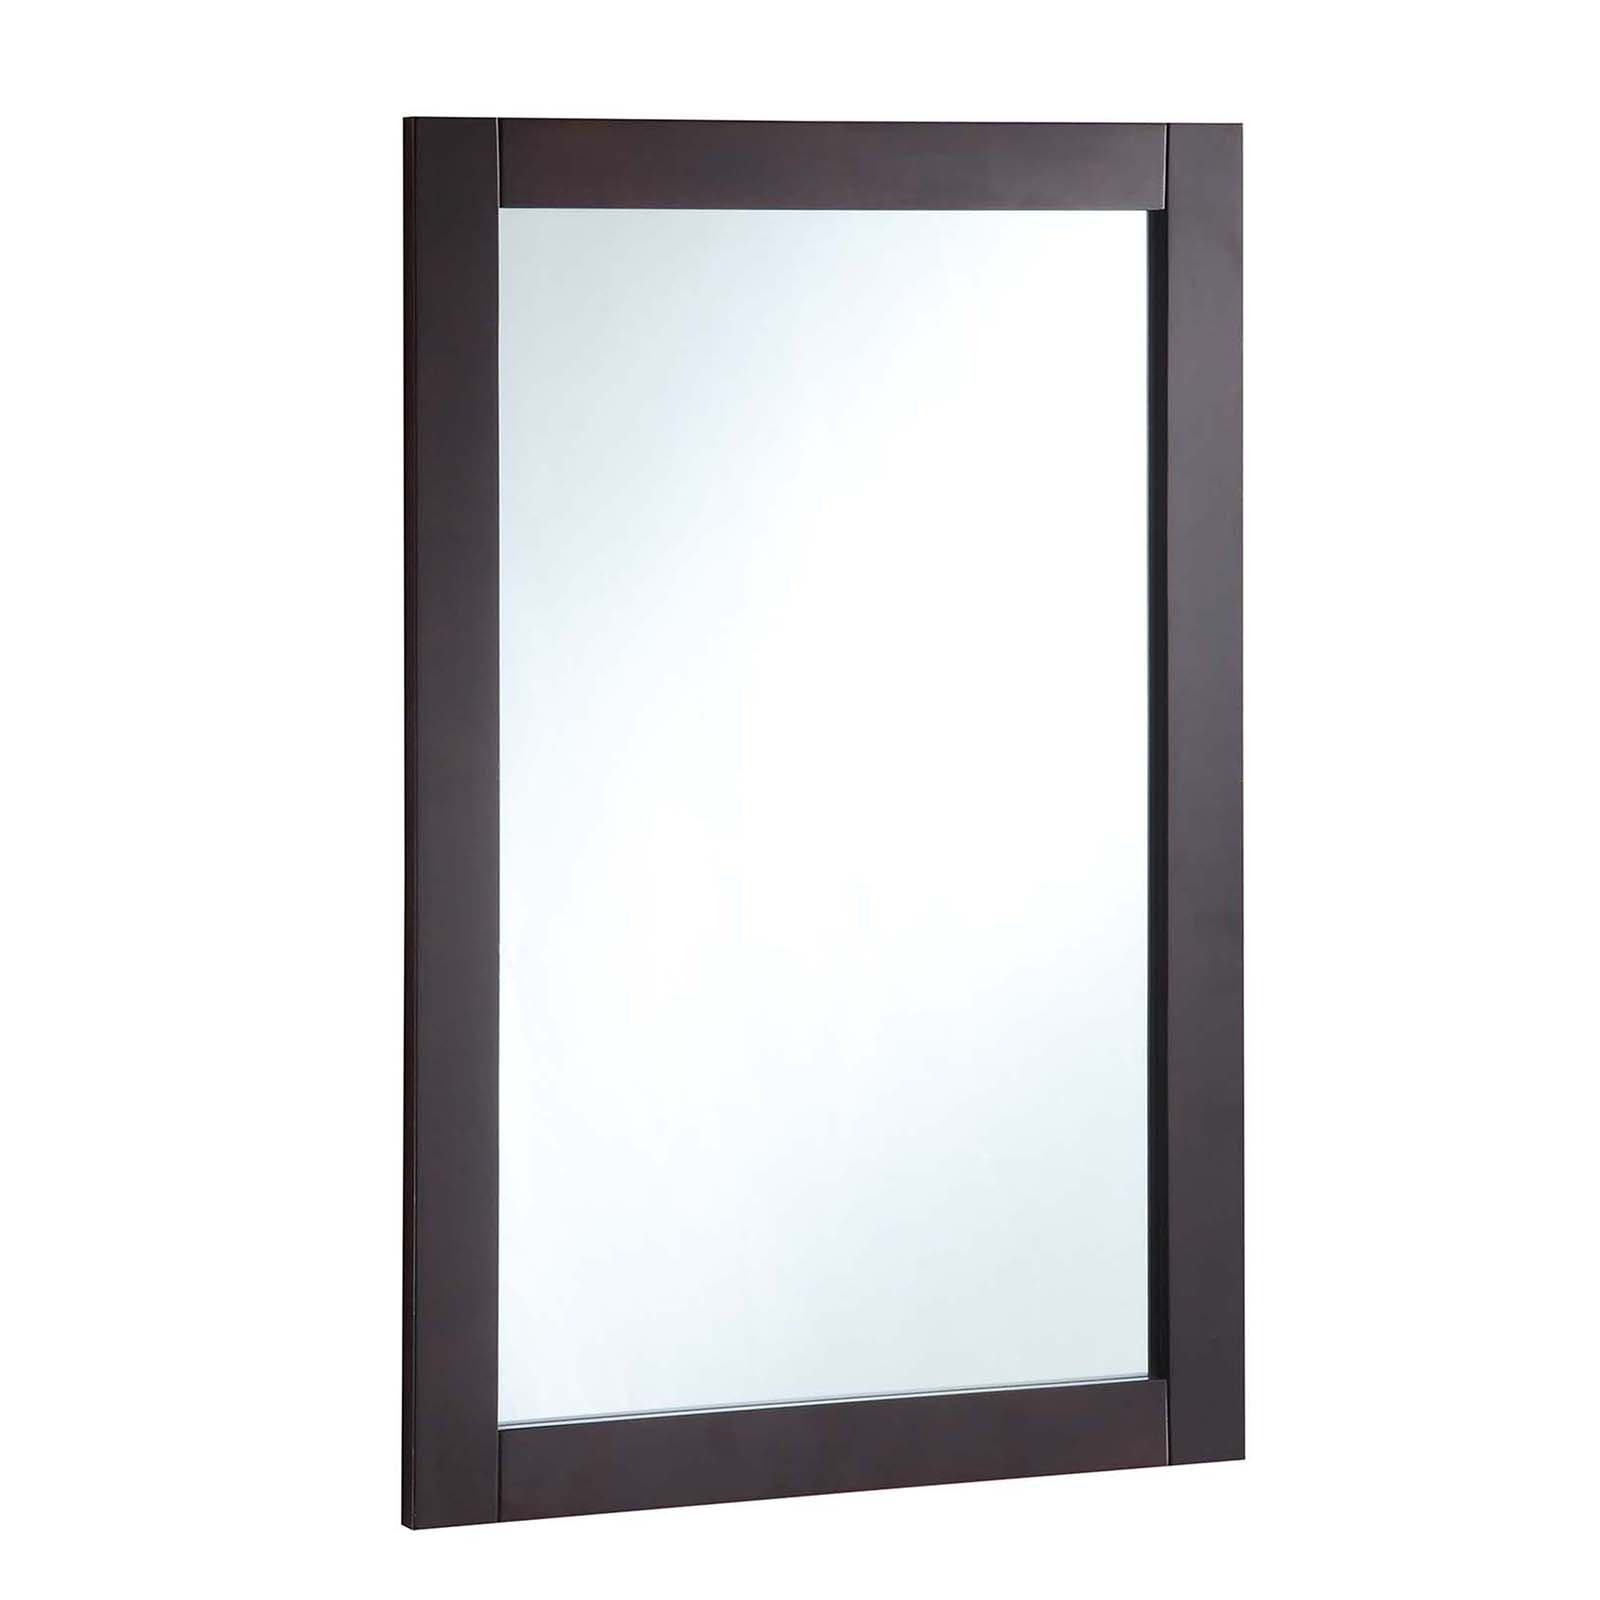 "Click here to buy Design House 547075 20"" x 30"" Vanity Mirror, Espresso by Design House."